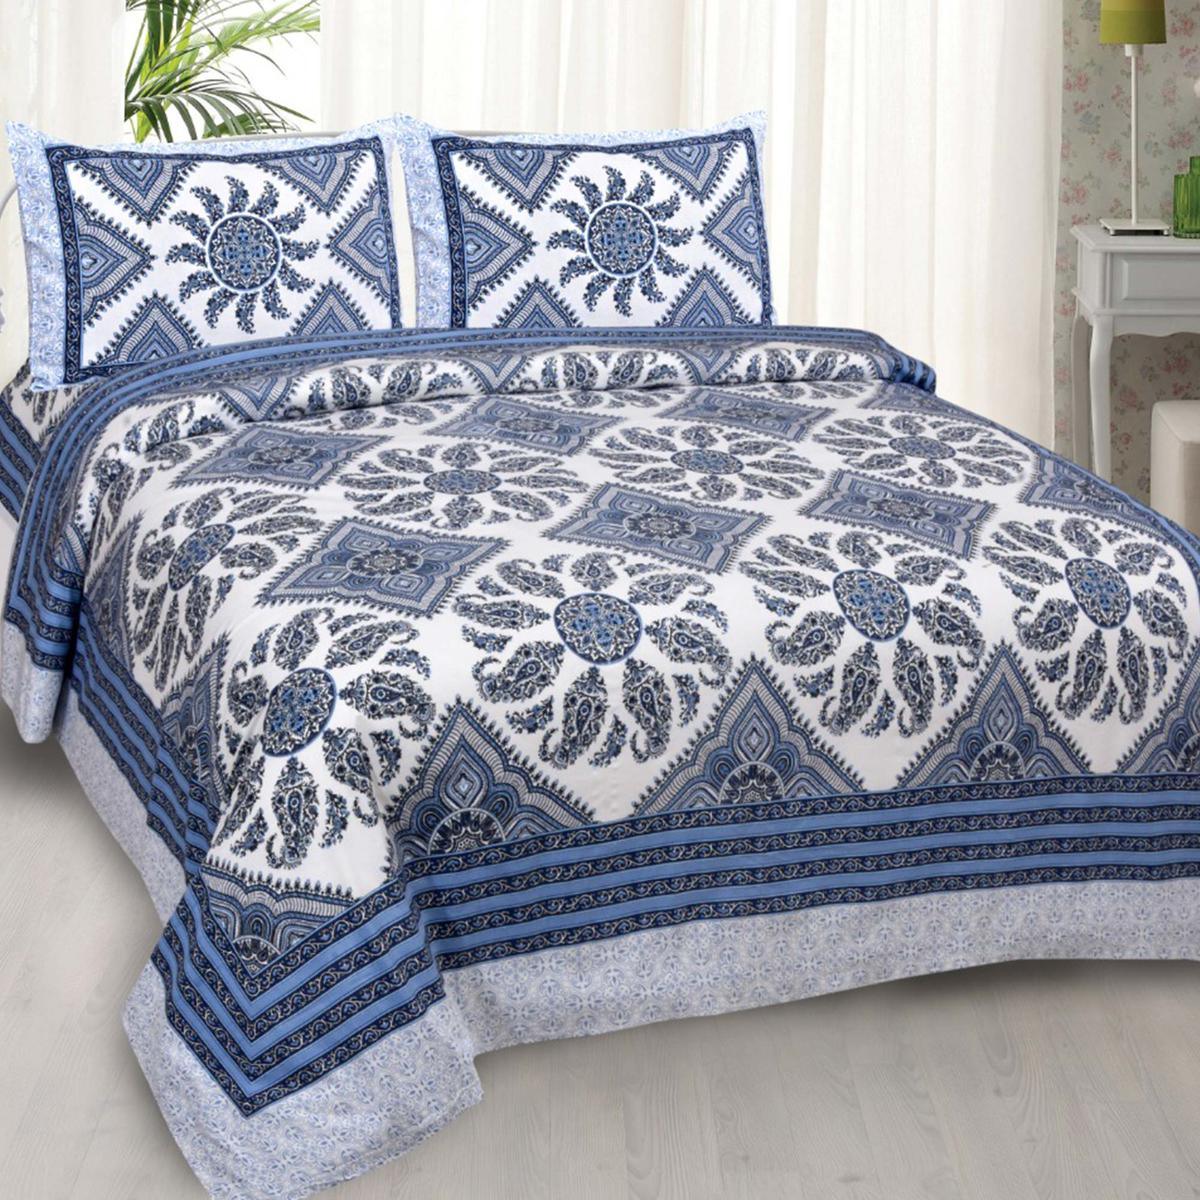 Imposing Blue Colored Folk Design Cotton Double Bedsheet With 2 Pillow Cover